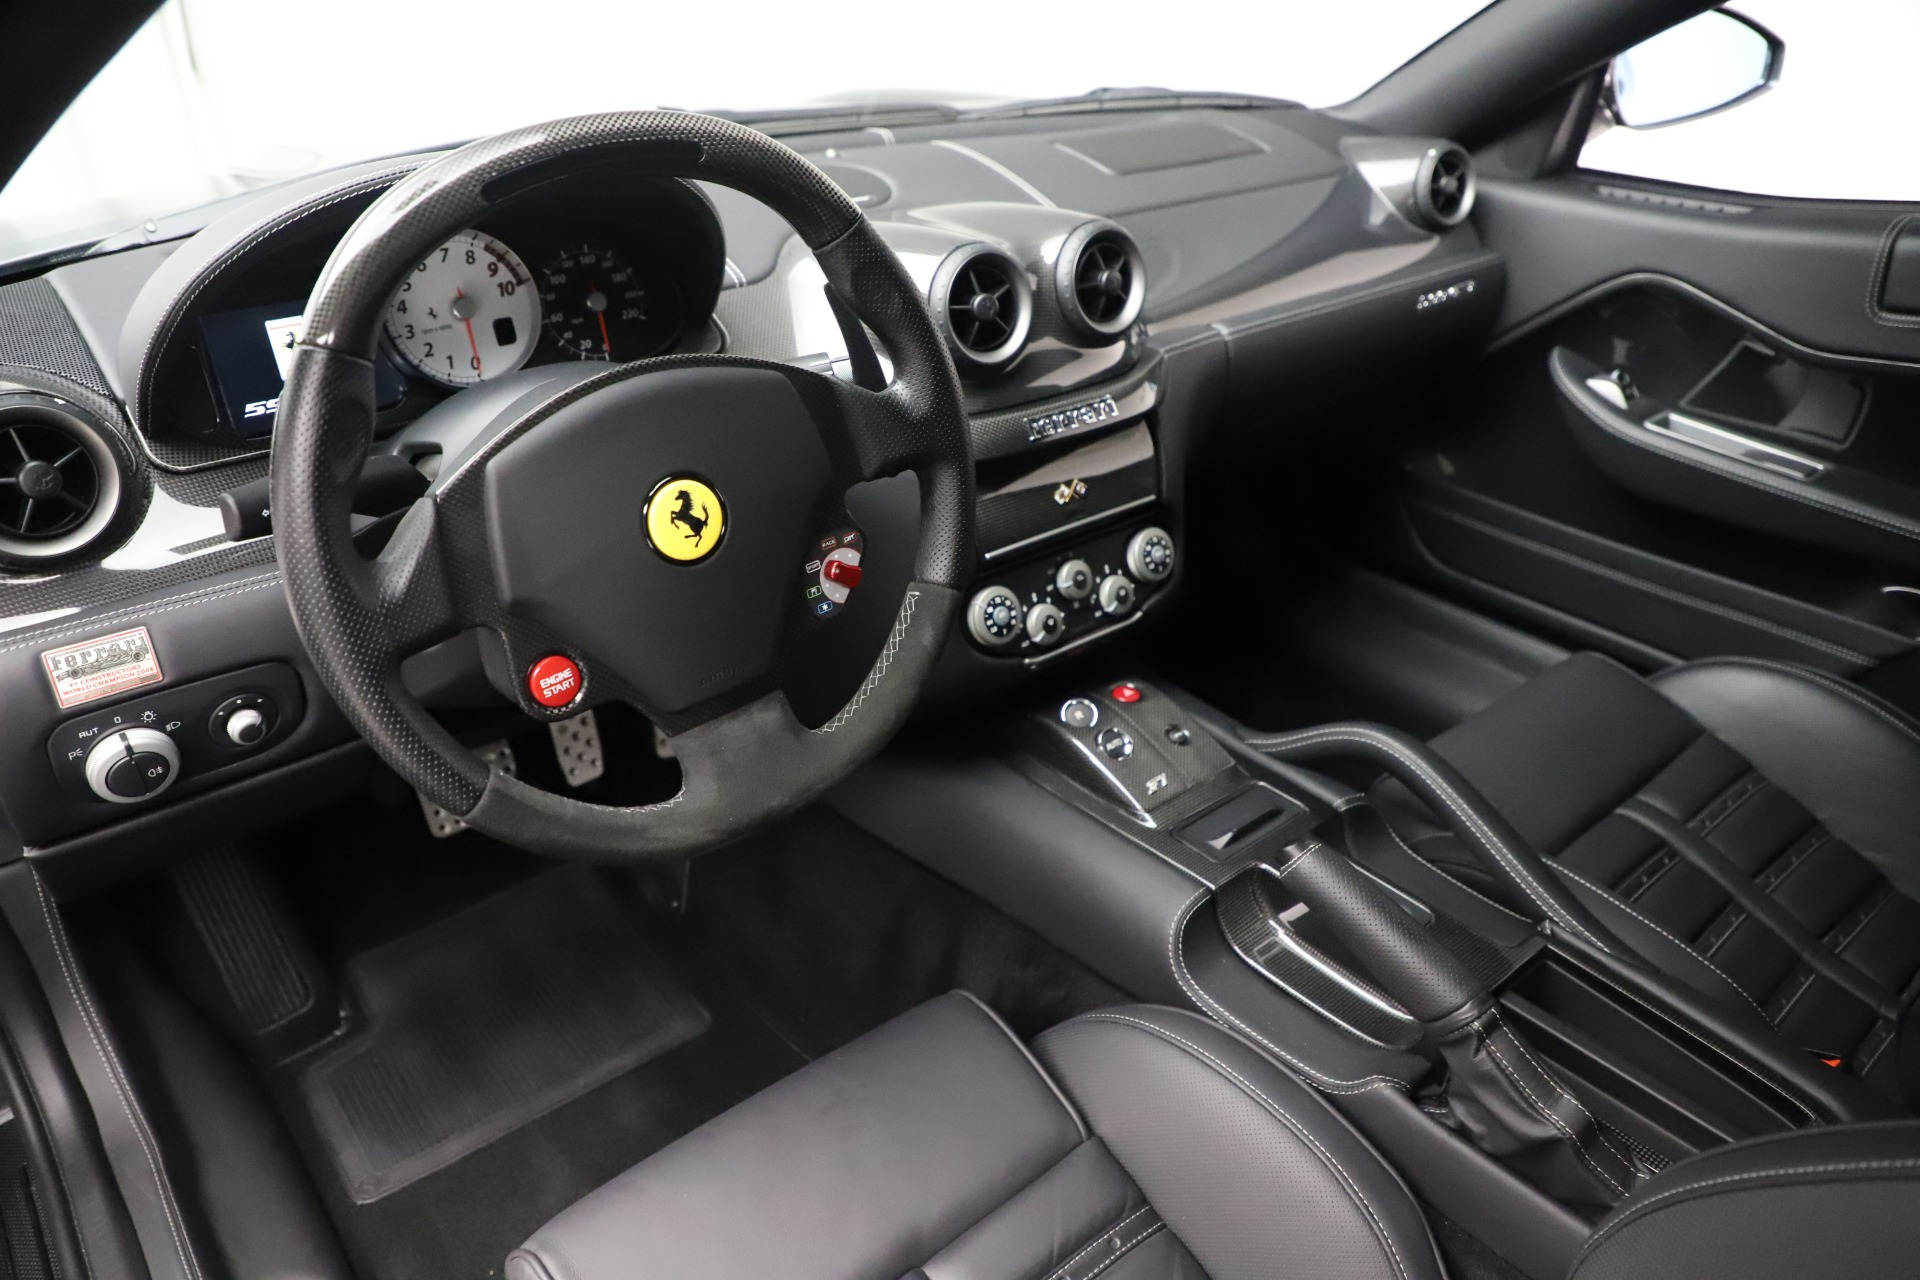 Used 2010 Ferrari 599 GTB Fiorano HGTE For Sale In Westport, CT 3544_p13